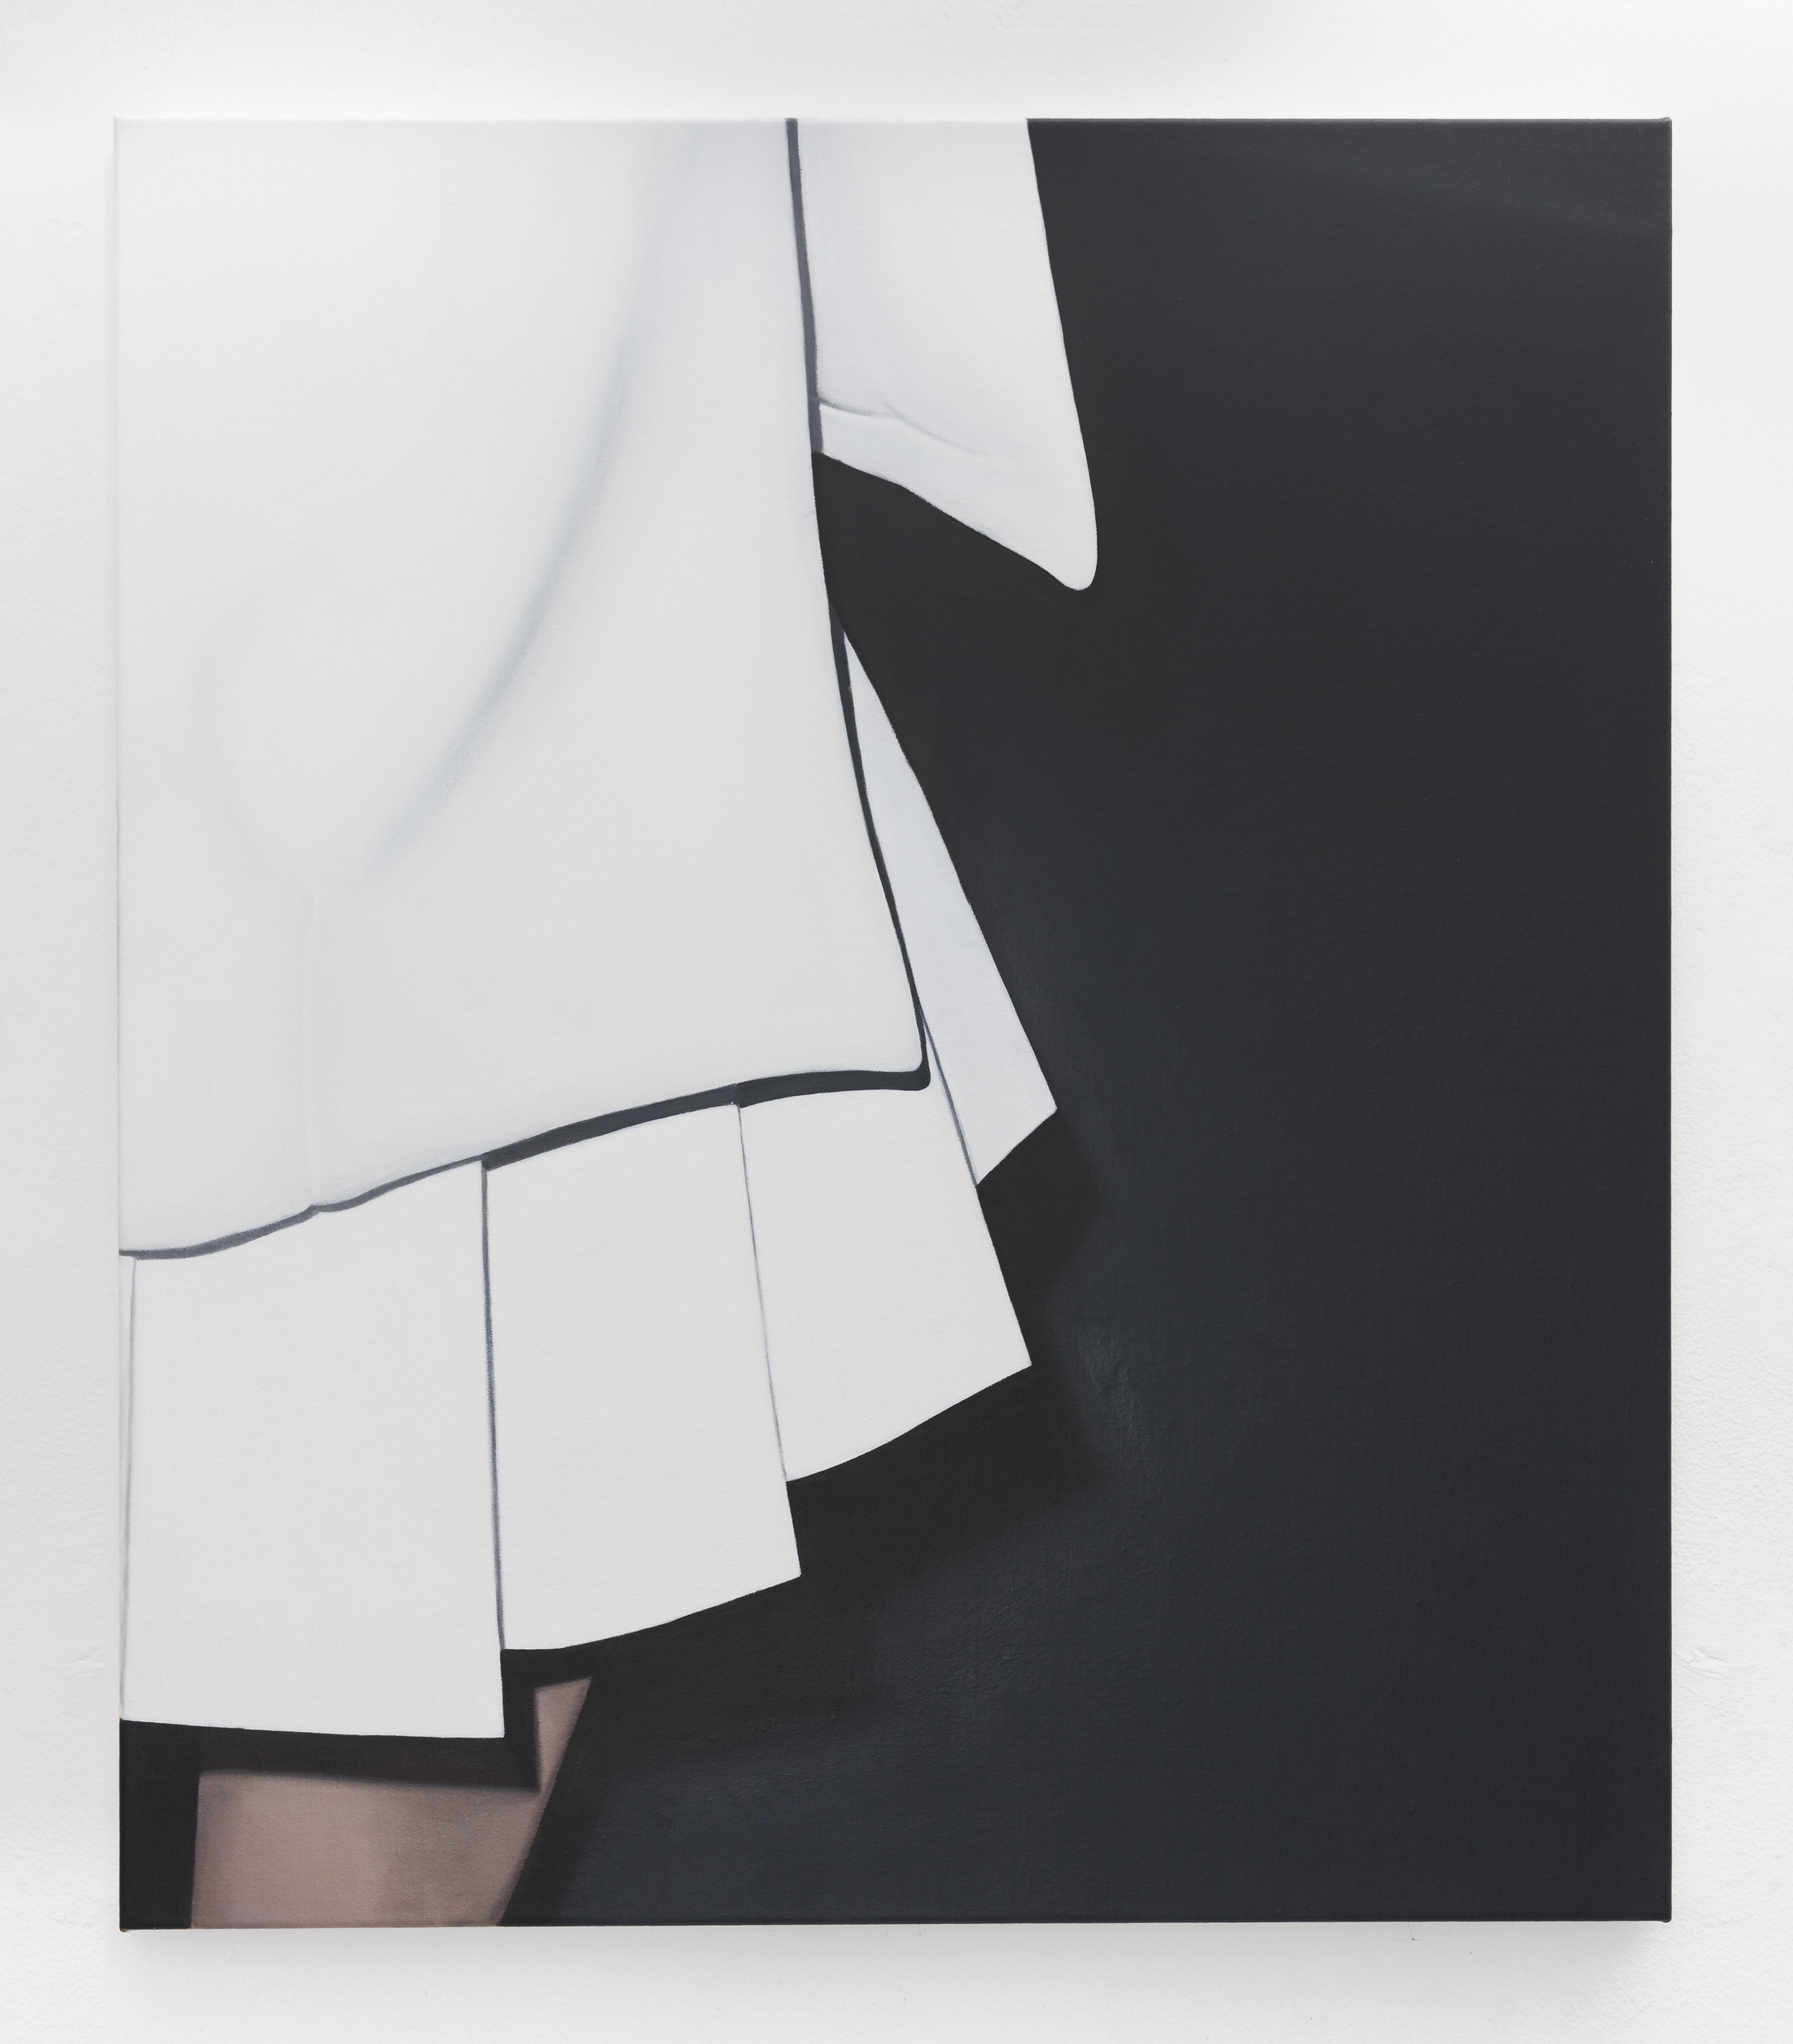 White Dress III | 2018 | oil on linen | 70 x 60 cm | 27.6 x 23.6 in | Photo by Lee Welch